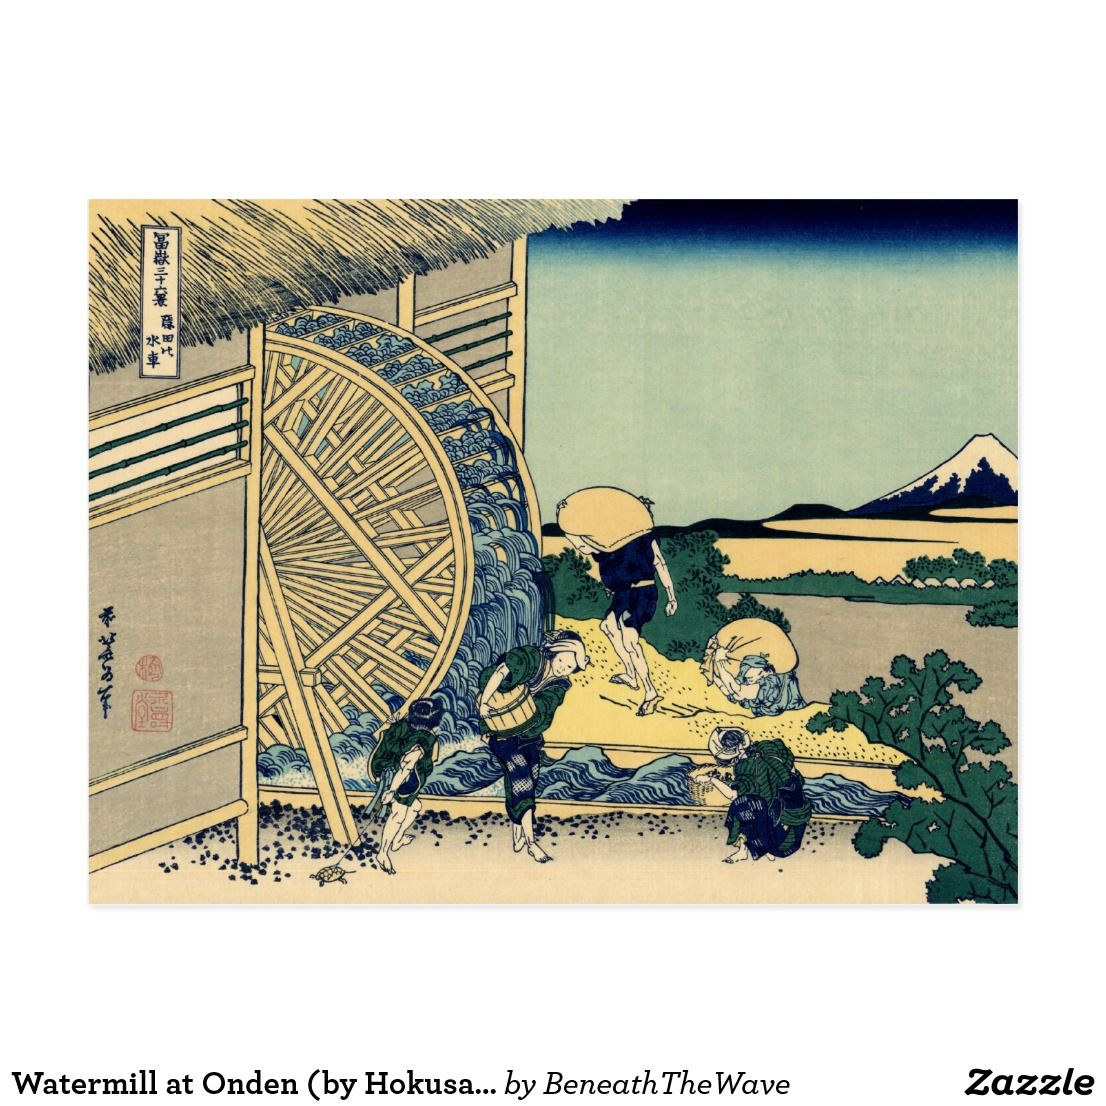 Carte Postale Watermill at Onden (by Hokusai)